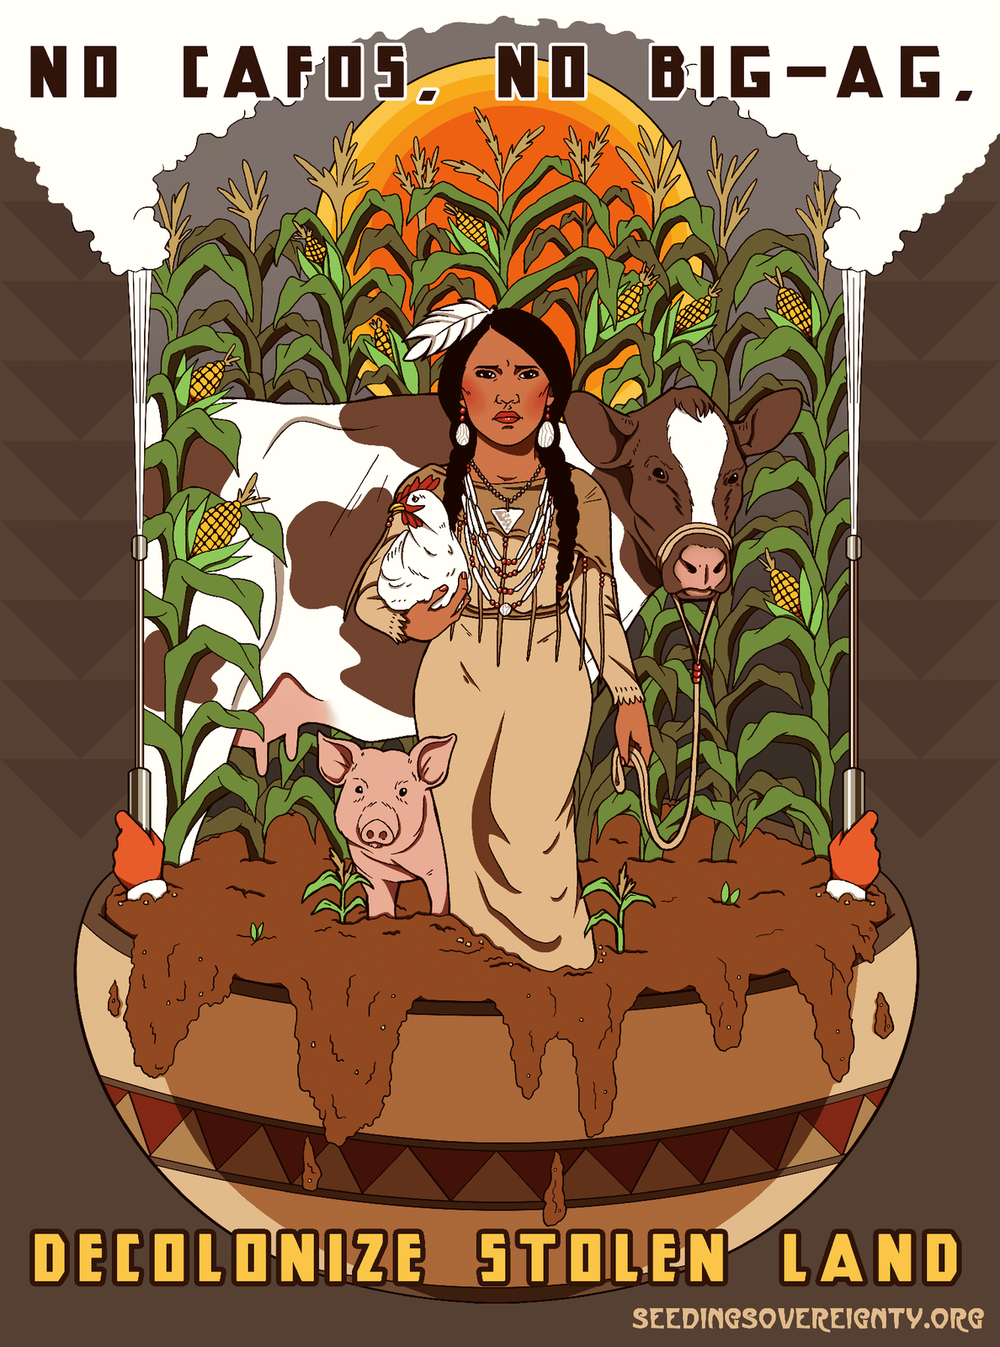 Iowa: Big-Ag's Sacrifice Zone - An Indigenous Perspective - A Land Decolonization Project Zine Series by Seeding SovereigntyWritten by Christine Nobiss & Art by Jackie FawnPublished September 27, 2018 Printable PDF Zine Here